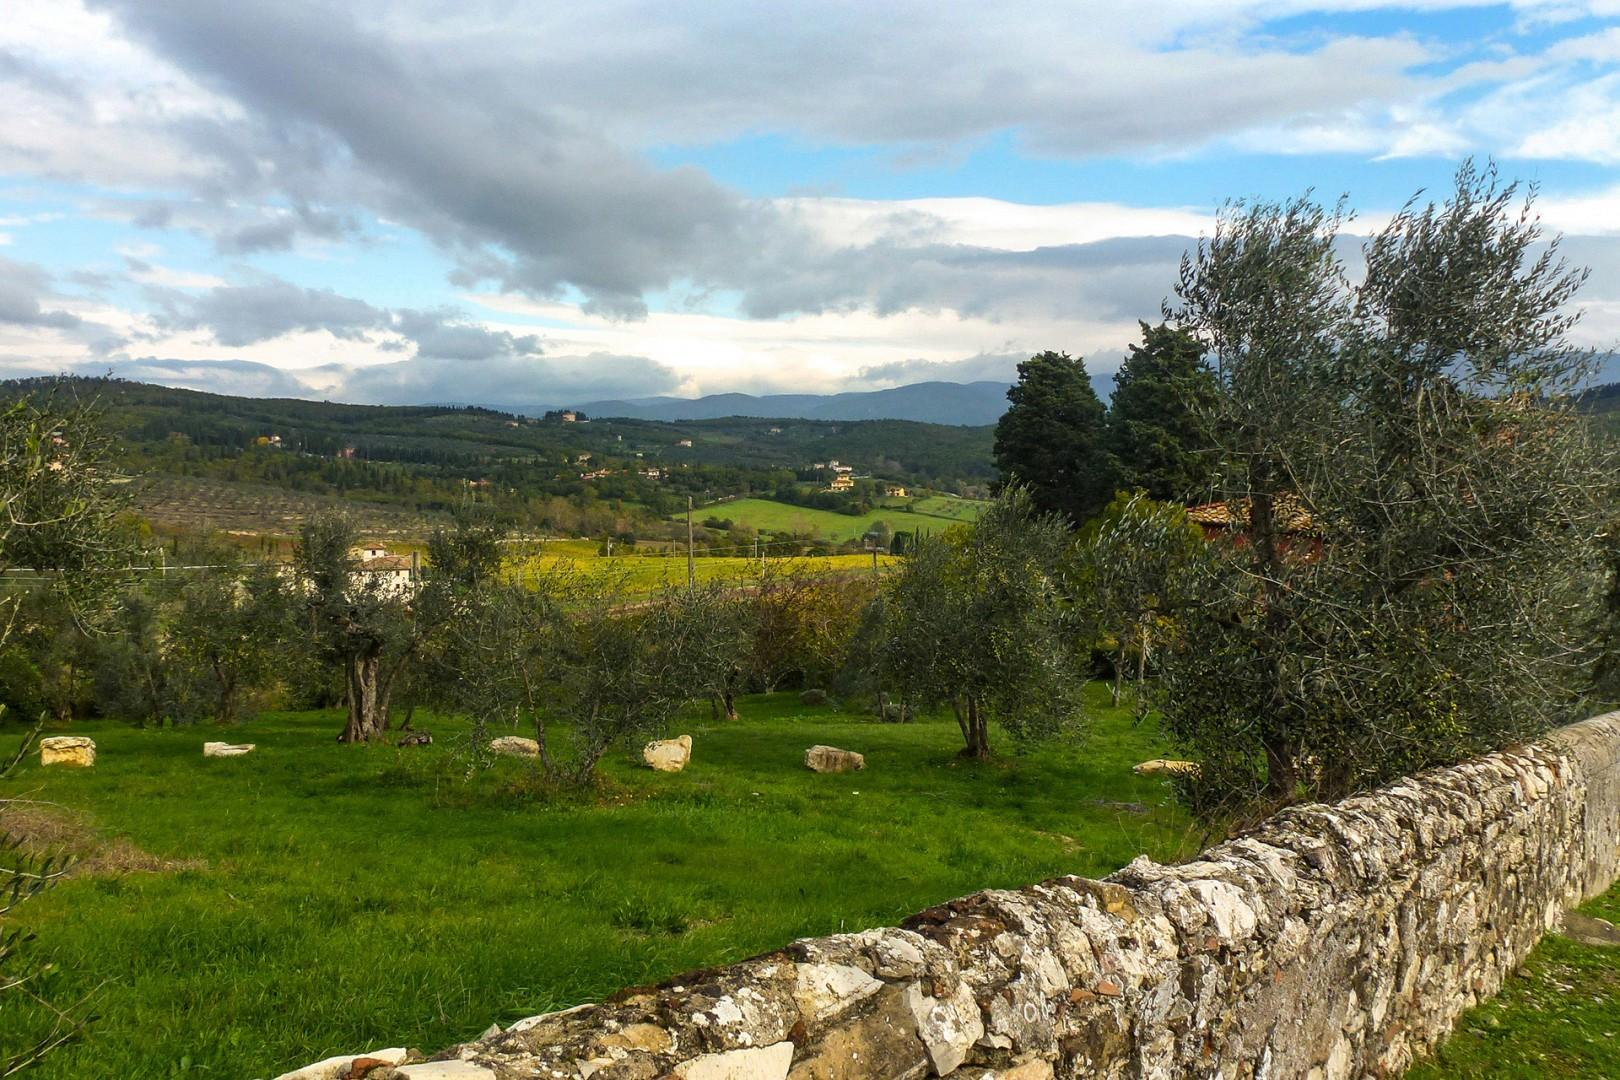 The estate produces several varieties of olive oil.